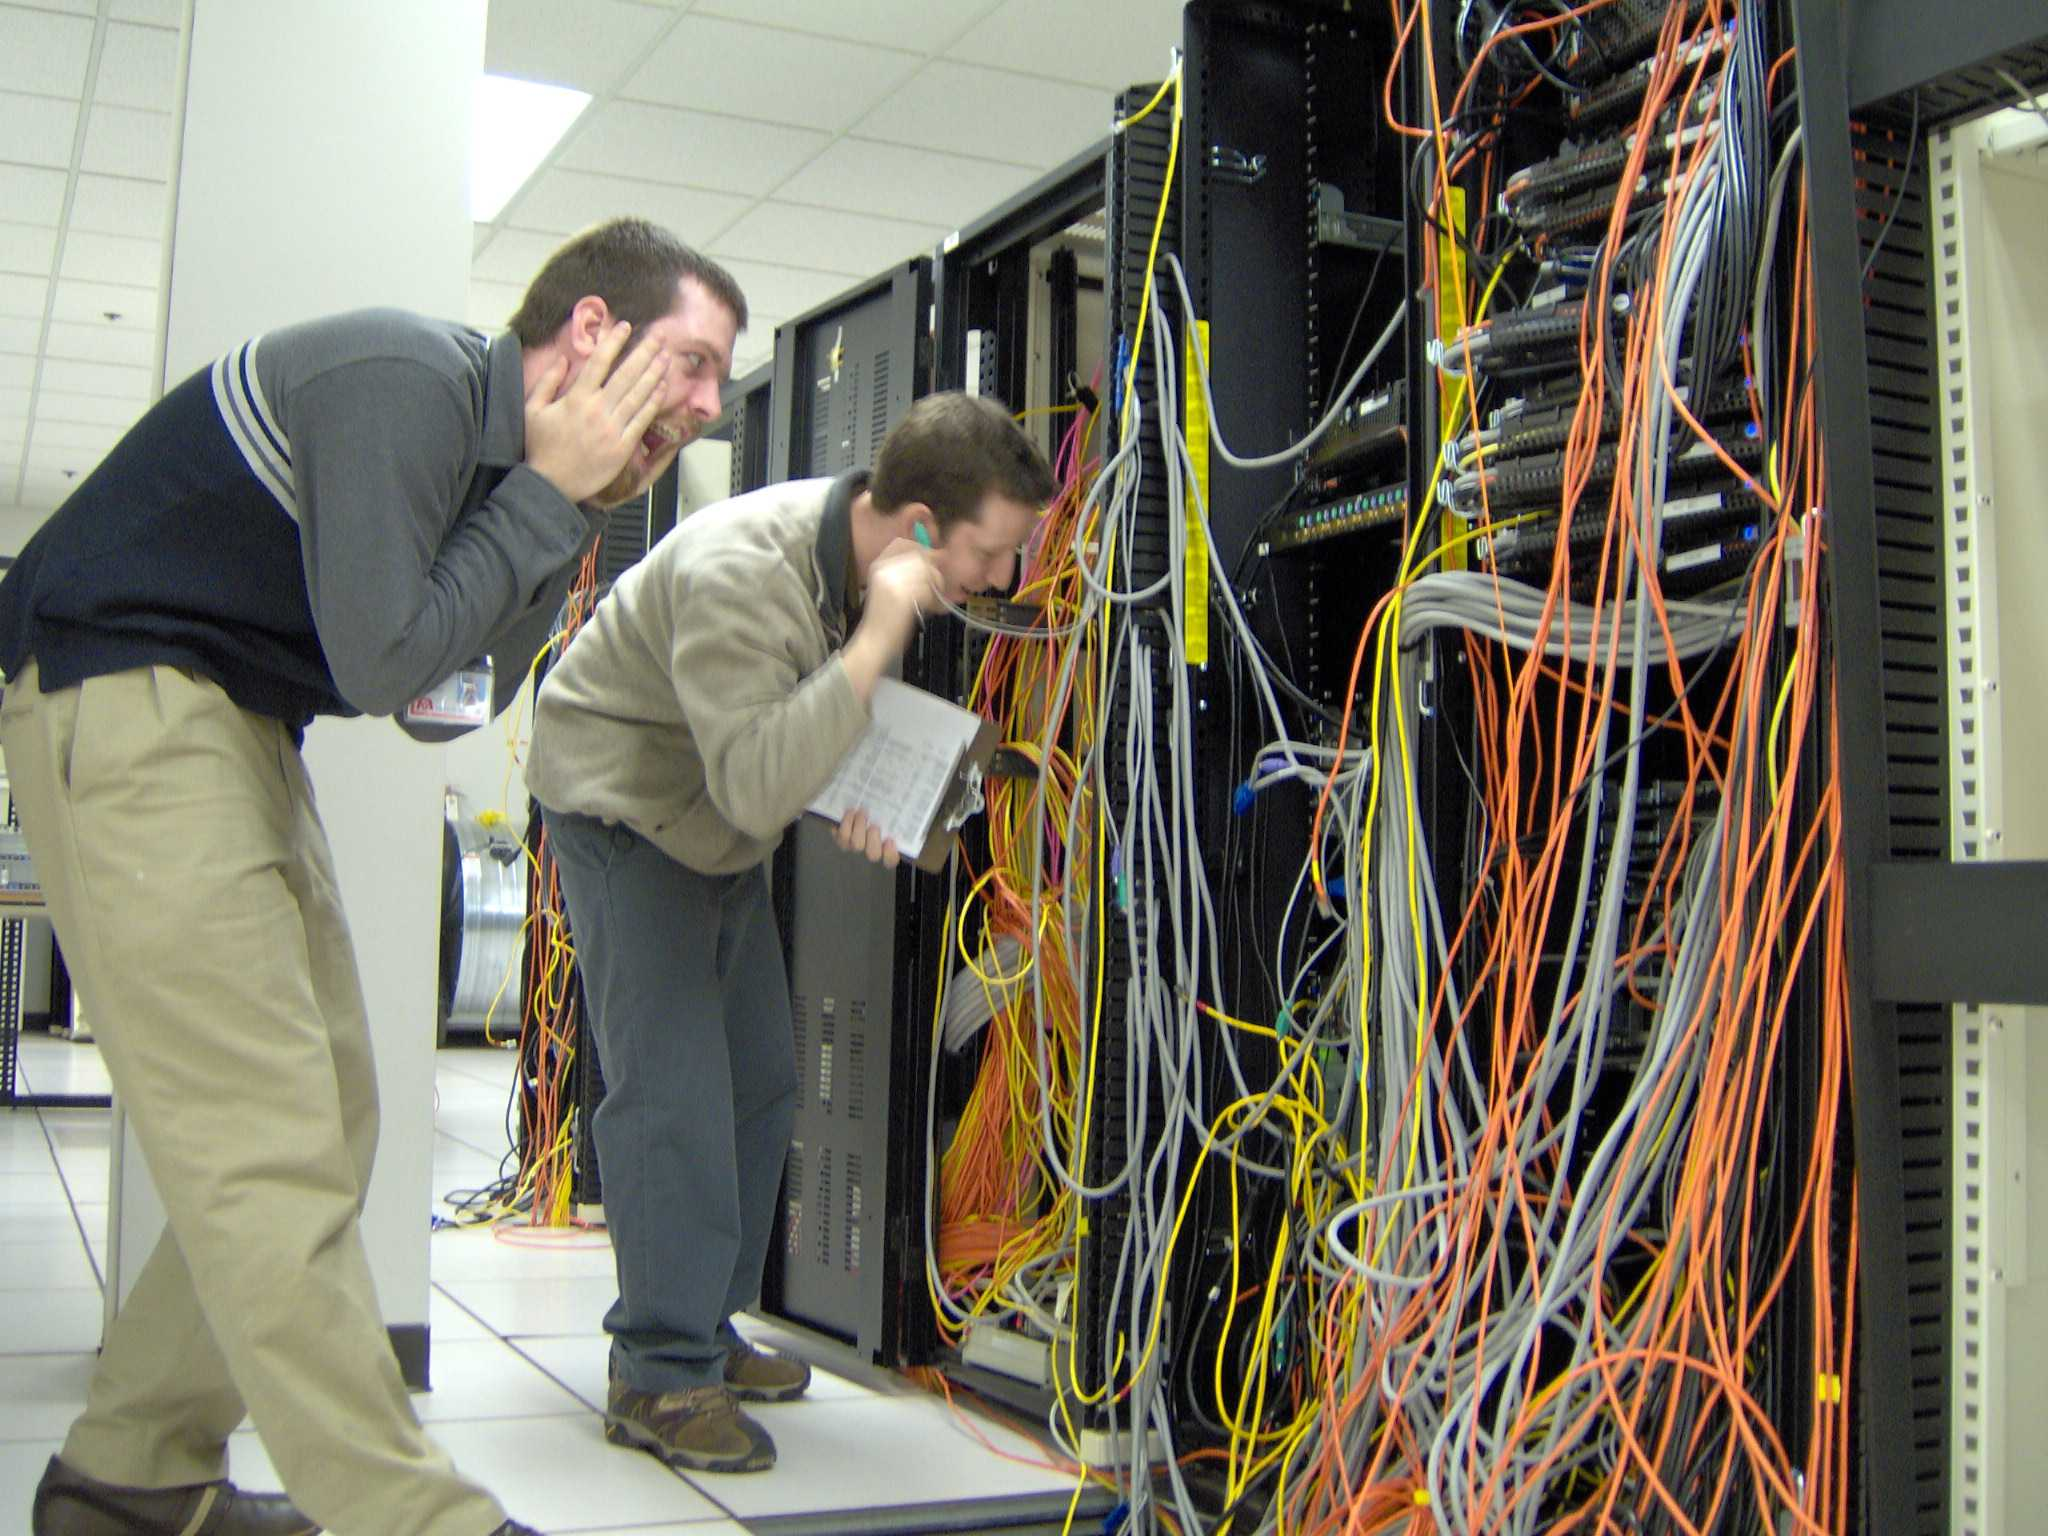 People gawking at a cabling horror, which is just one of the stranger pictures I've stumbled across on Creative Commons